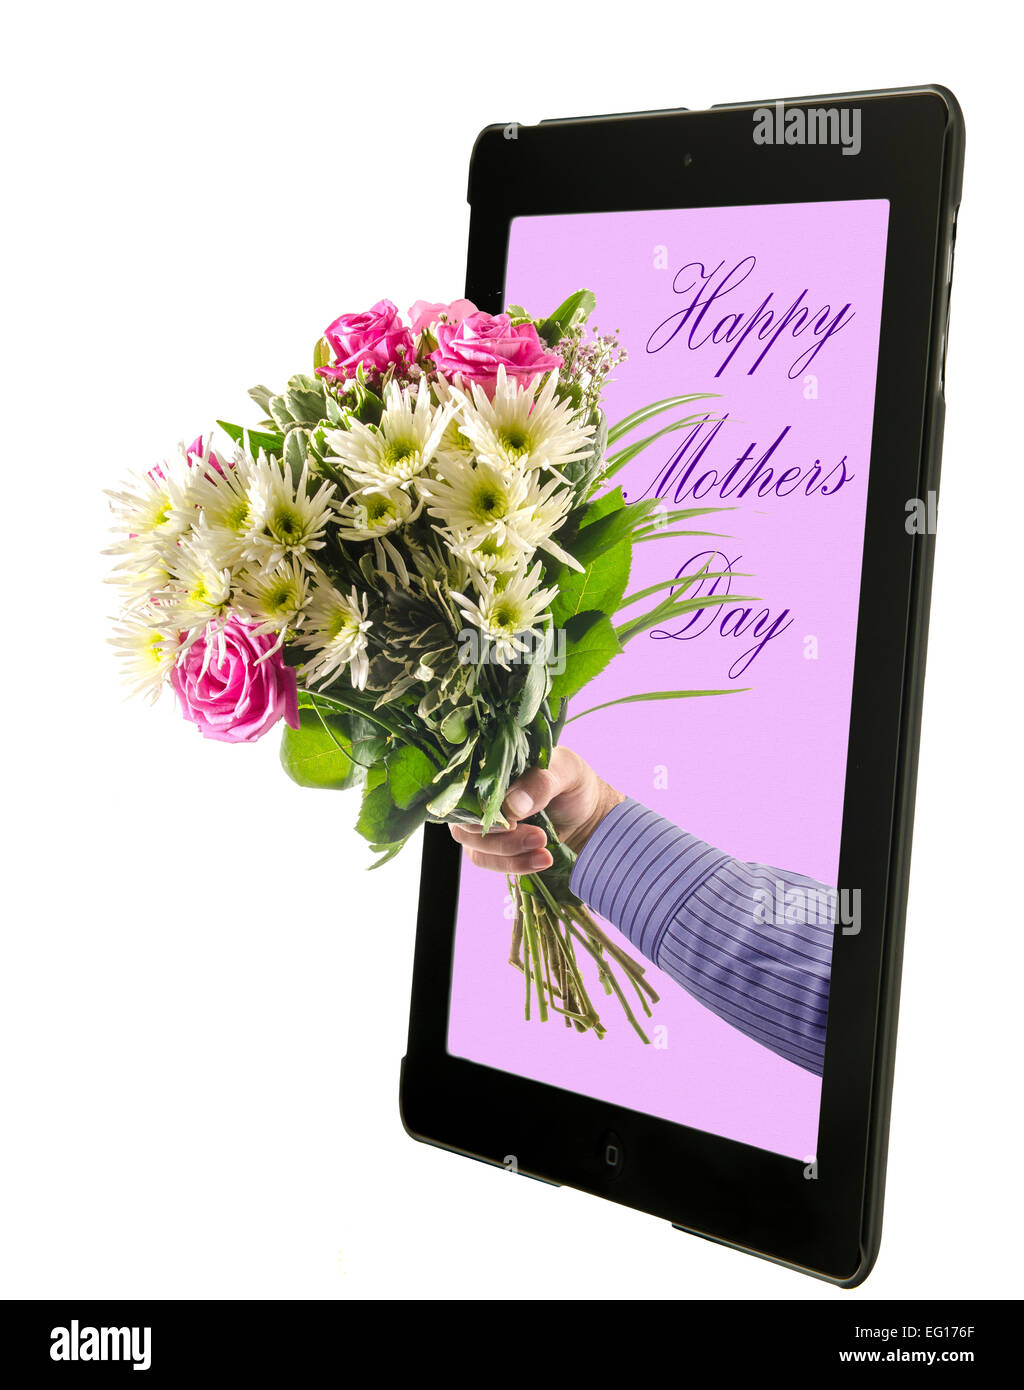 Mothers day coloring online - Concept Image Of Sending Mothers Day Flowers Online Stock Photo Concept Image Of Sending Mothers Day Flowers Online Stock Photo